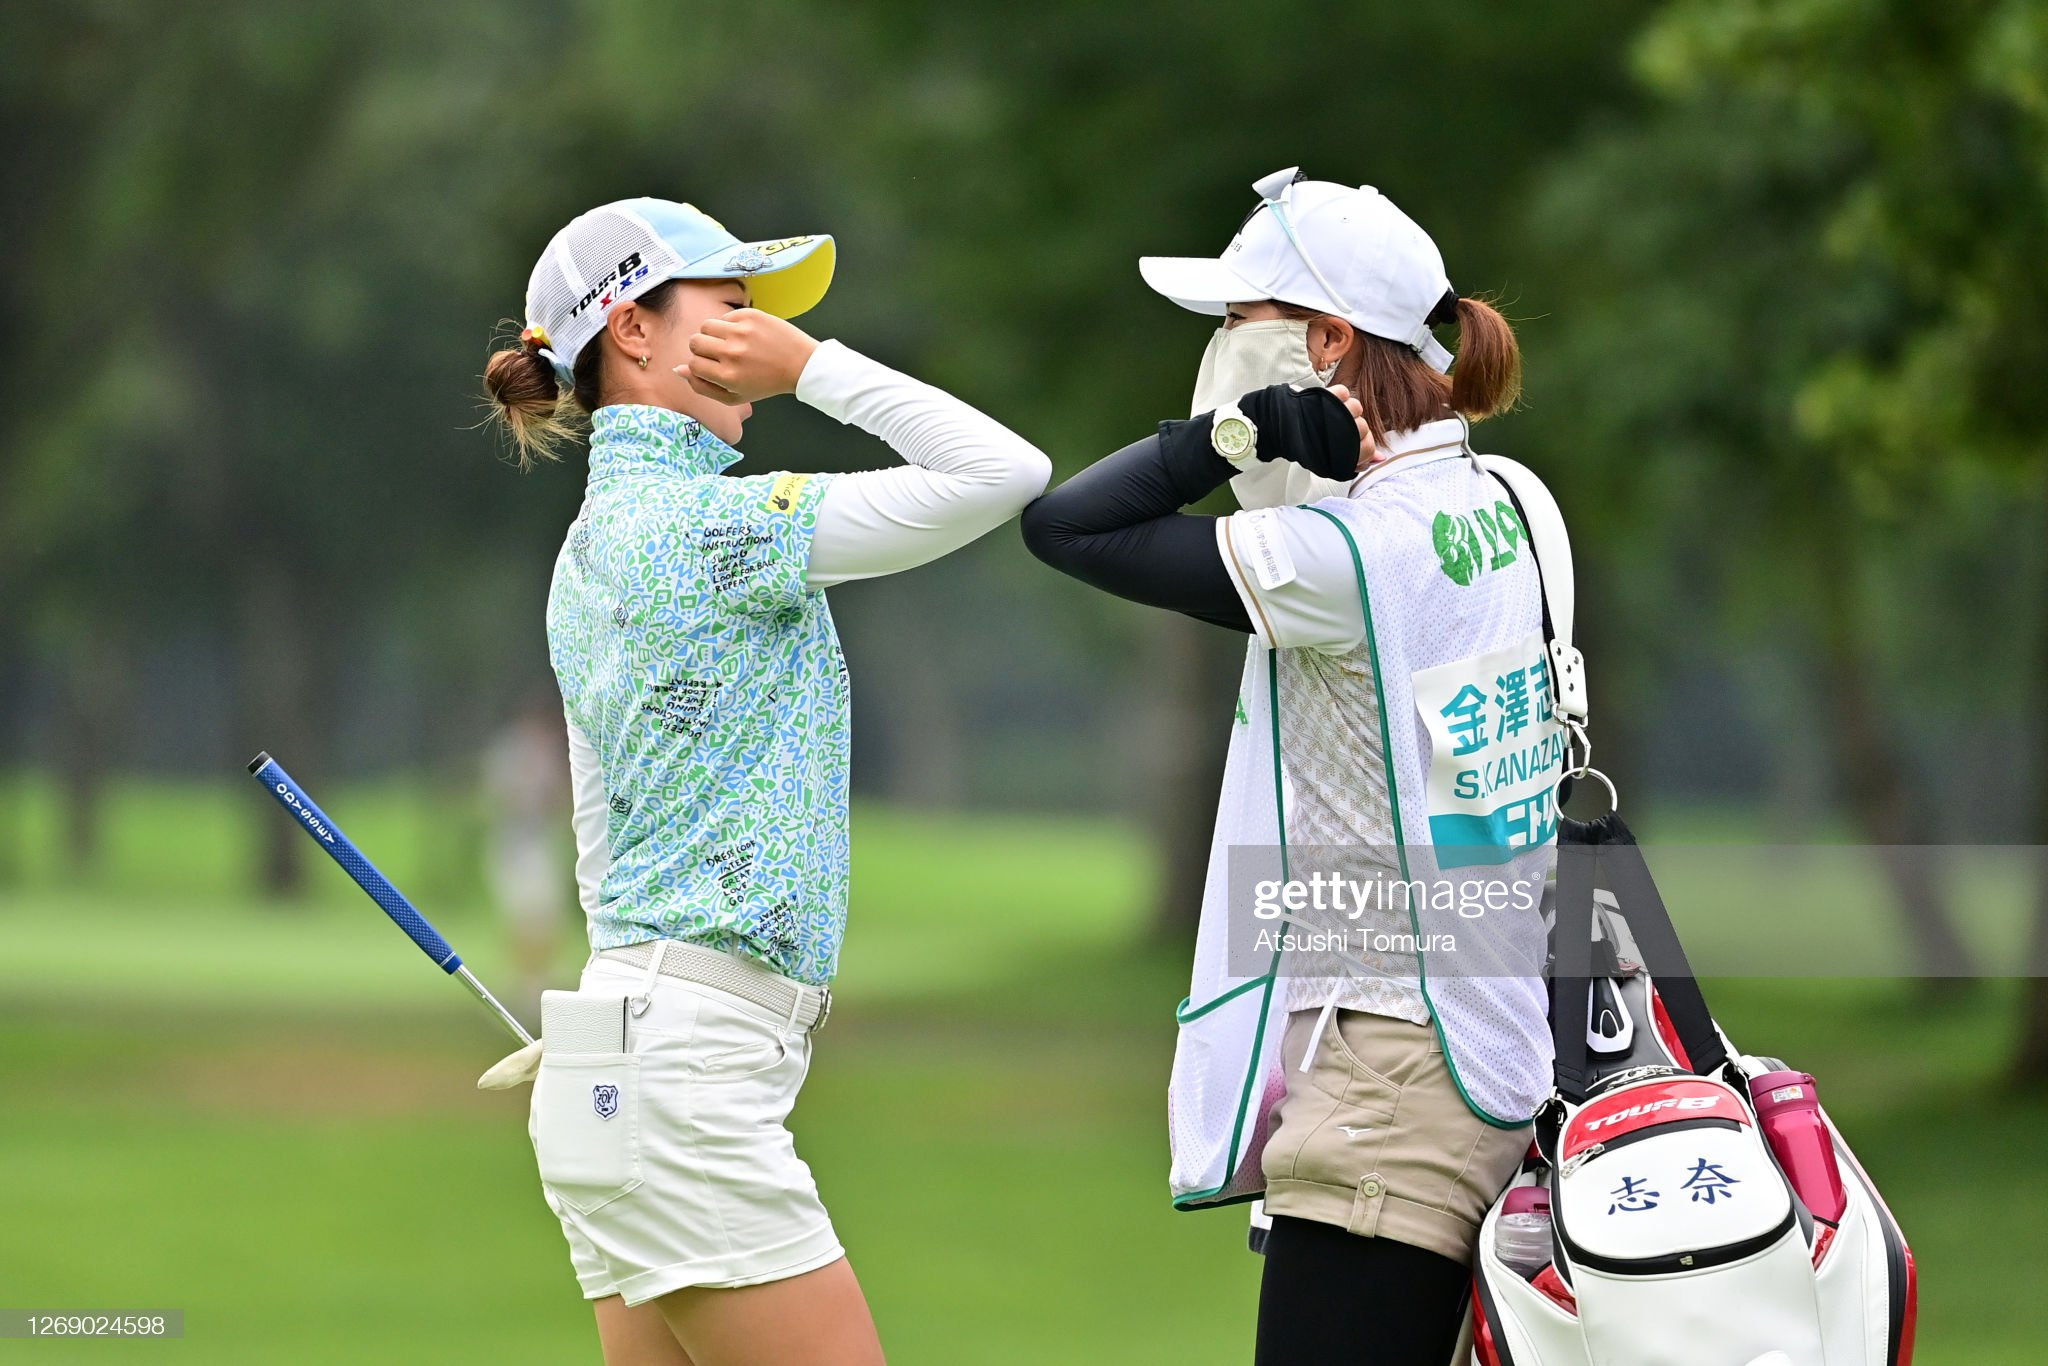 https://media.gettyimages.com/photos/shina-kanazawa-of-japan-elbow-bumps-with-her-caddie-after-the-birdie-picture-id1269024598?s=2048x2048